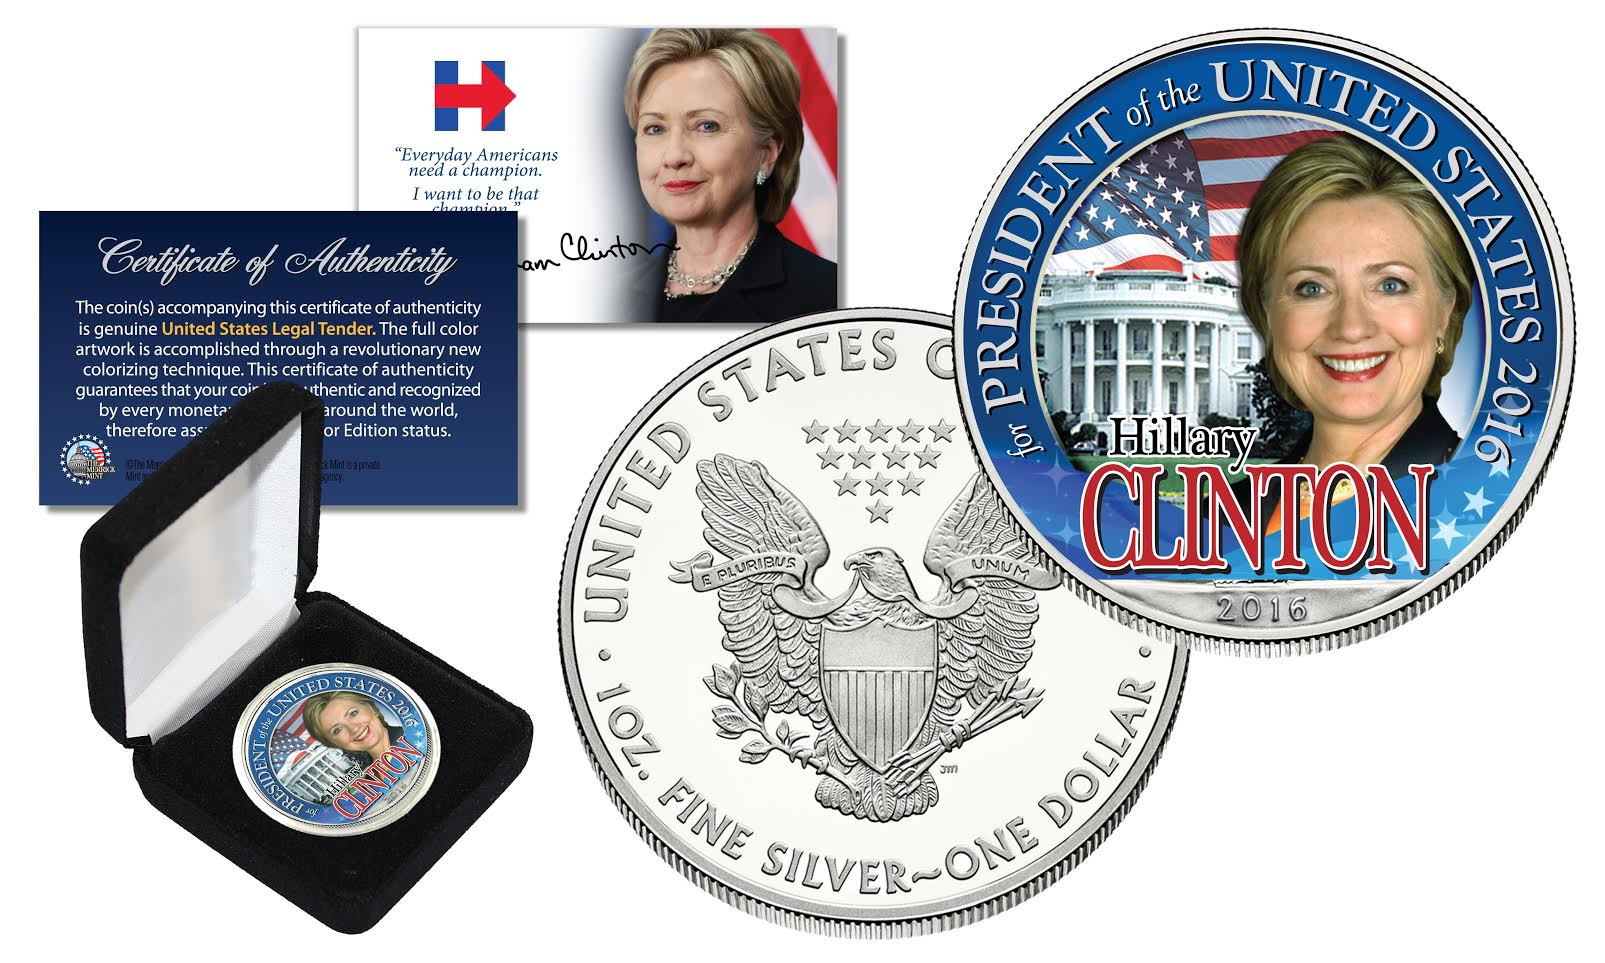 Hillary Clinton White House 2016 Pure 1oz Silver American